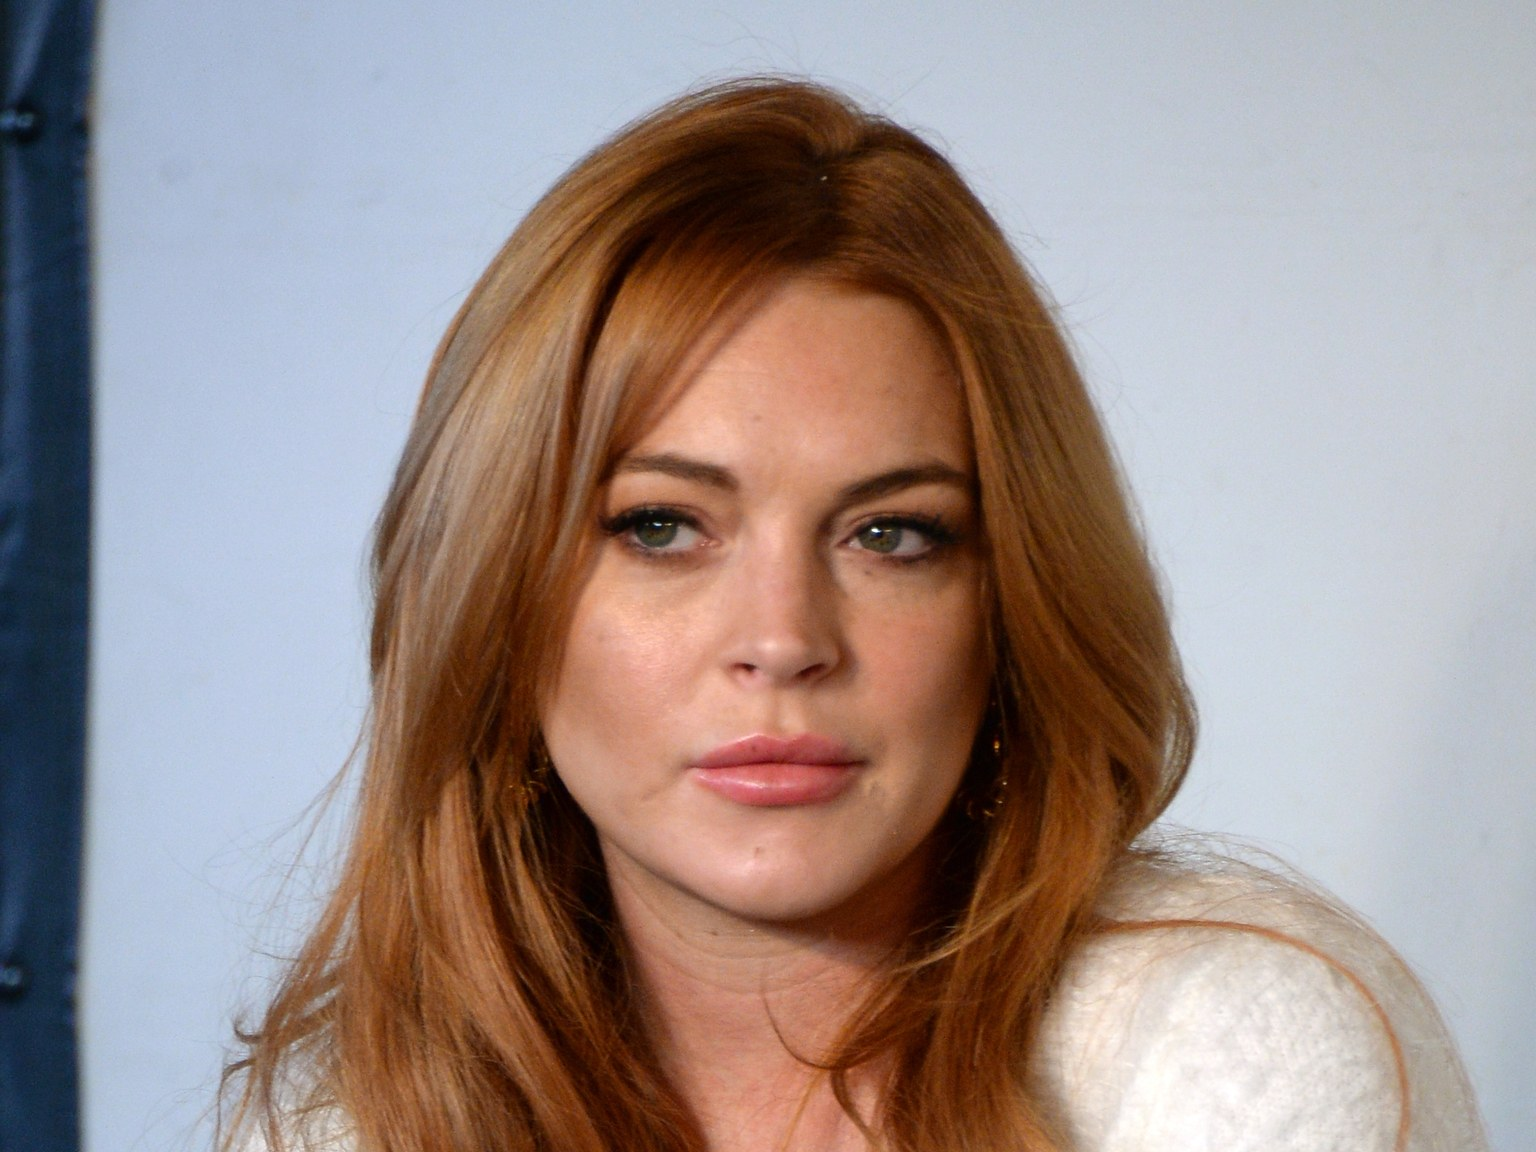 'Mean Girls' Broadway stars shade Lindsay Lohan at her own party